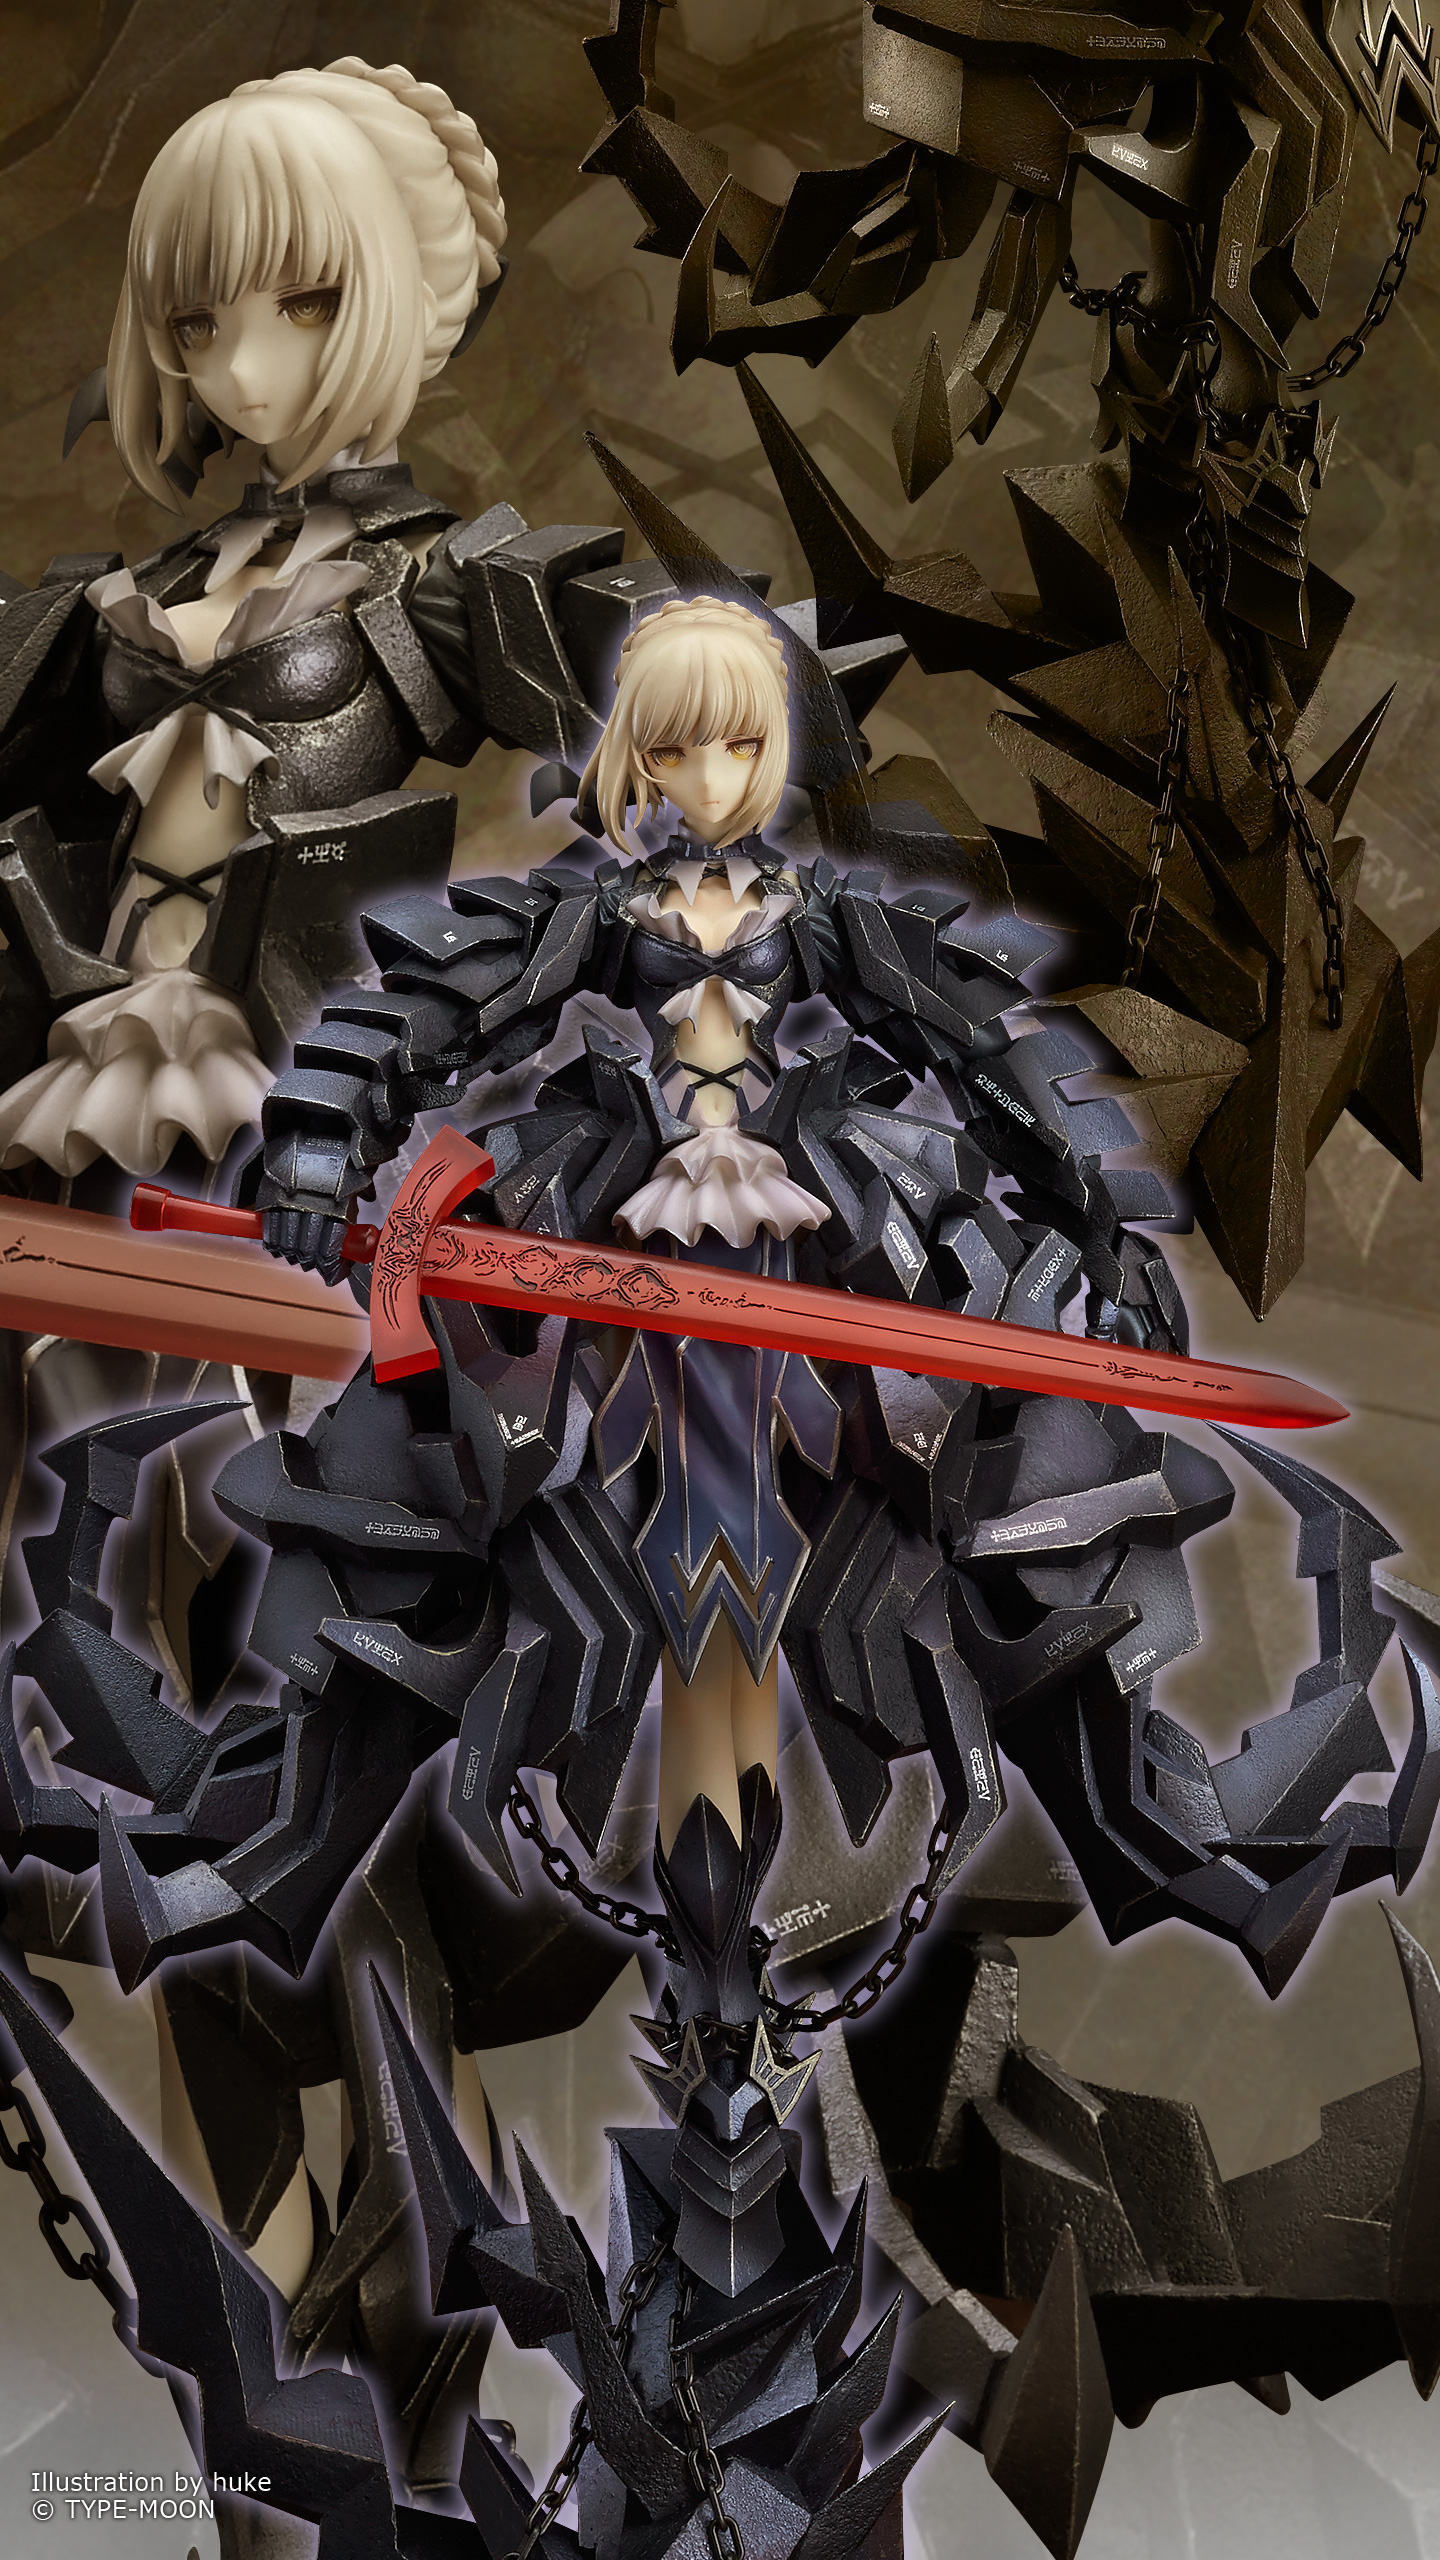 Fate/stay night Saber Alter Huke version